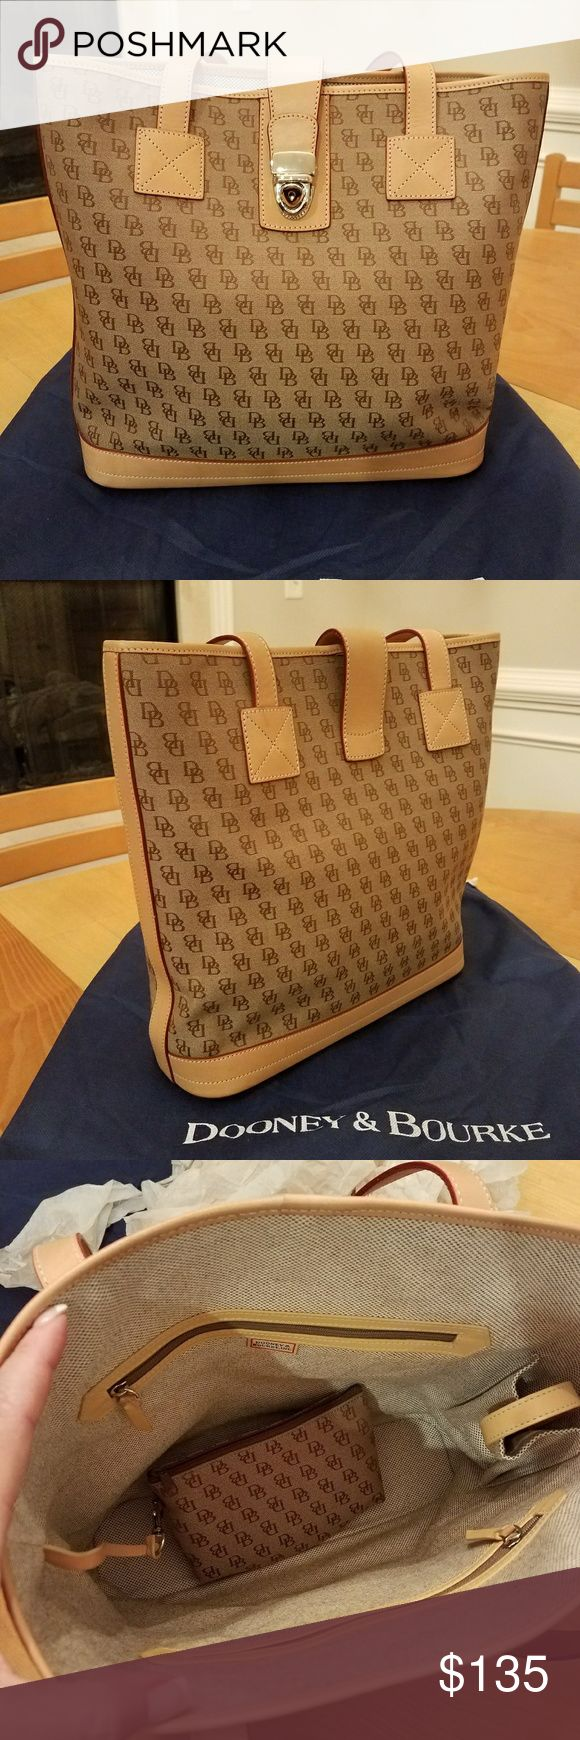 Dooney & Bourke Tote Bag This D&B bag is in like new condition as it was only worn a couple of times. Canvas body with  vachetta trim.  Comes with detachable canvas cosmetic bag. Has front press lock closure and feet on the bottom. Inside boasts a front and back zipper pocket as well as a cell phone pocket with velcro closure.  Light brown canvas body with tan leather trim. Comes with original D&B dust bag. Comes from smoke free environment.  Guaranteed 100% authentic. Dooney & Bourke Bags…